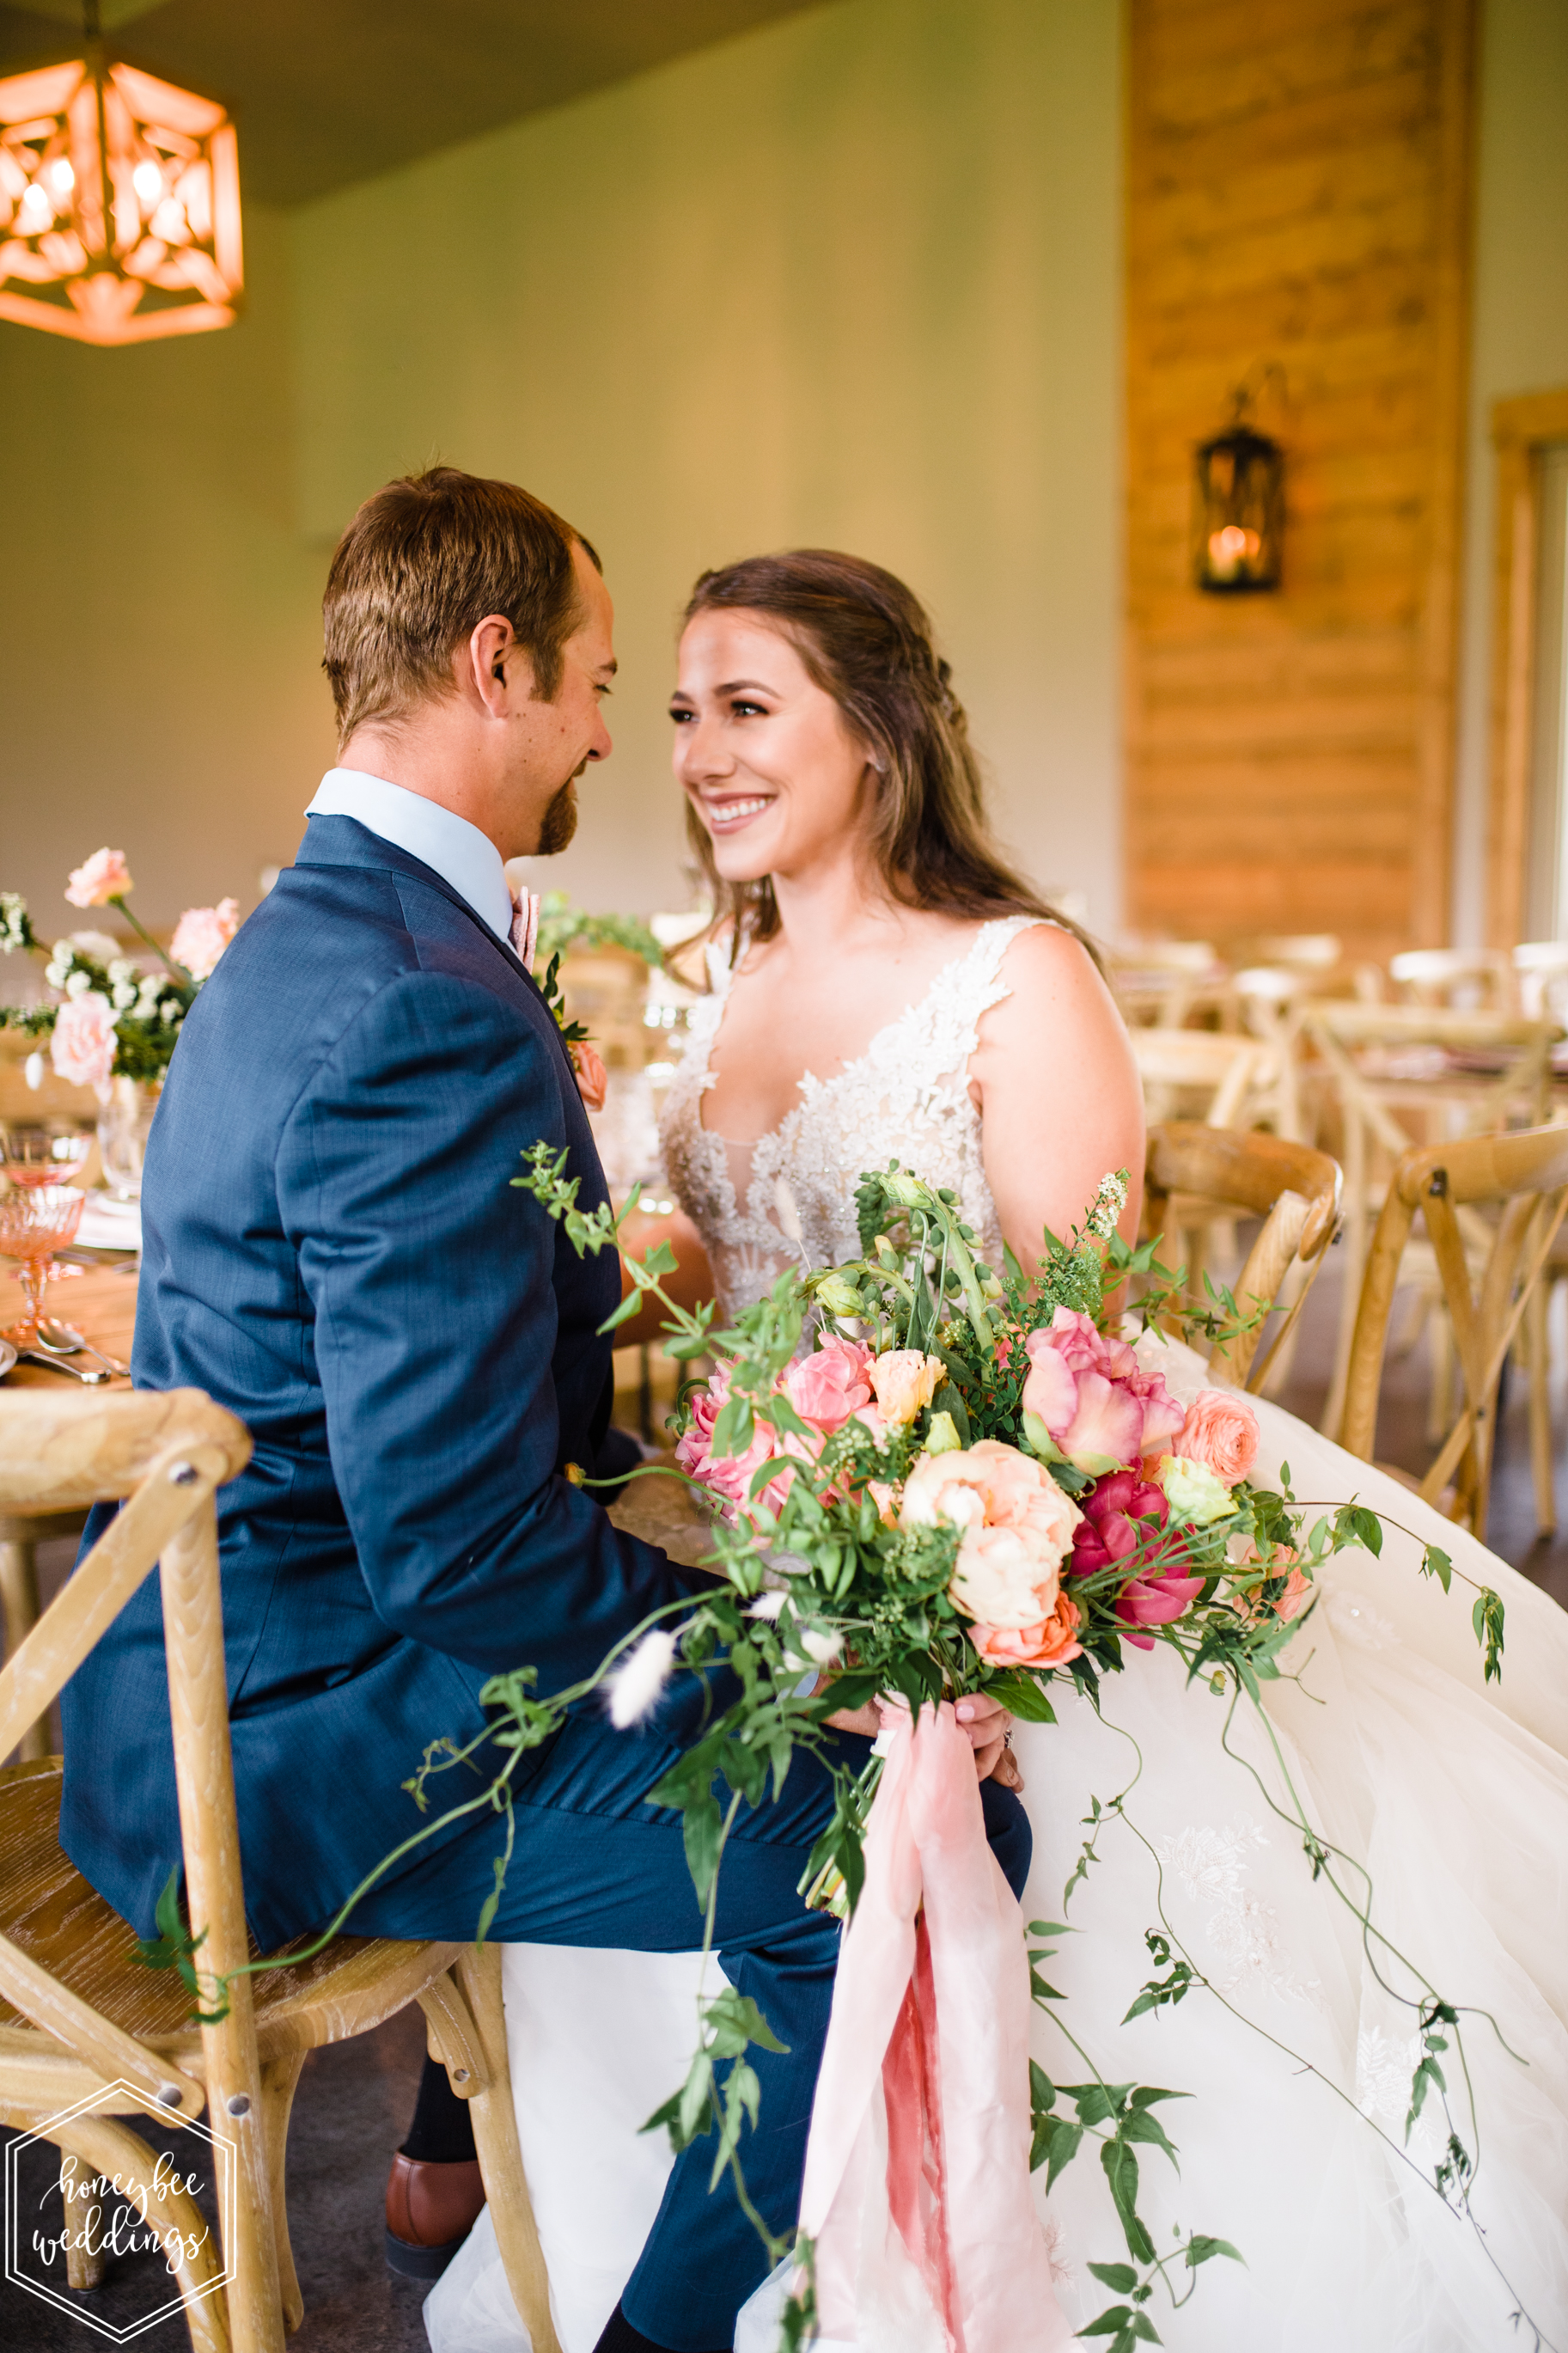 033Coral Mountain Wedding at White Raven_Honeybee Weddings_May 23, 2019-92.jpg